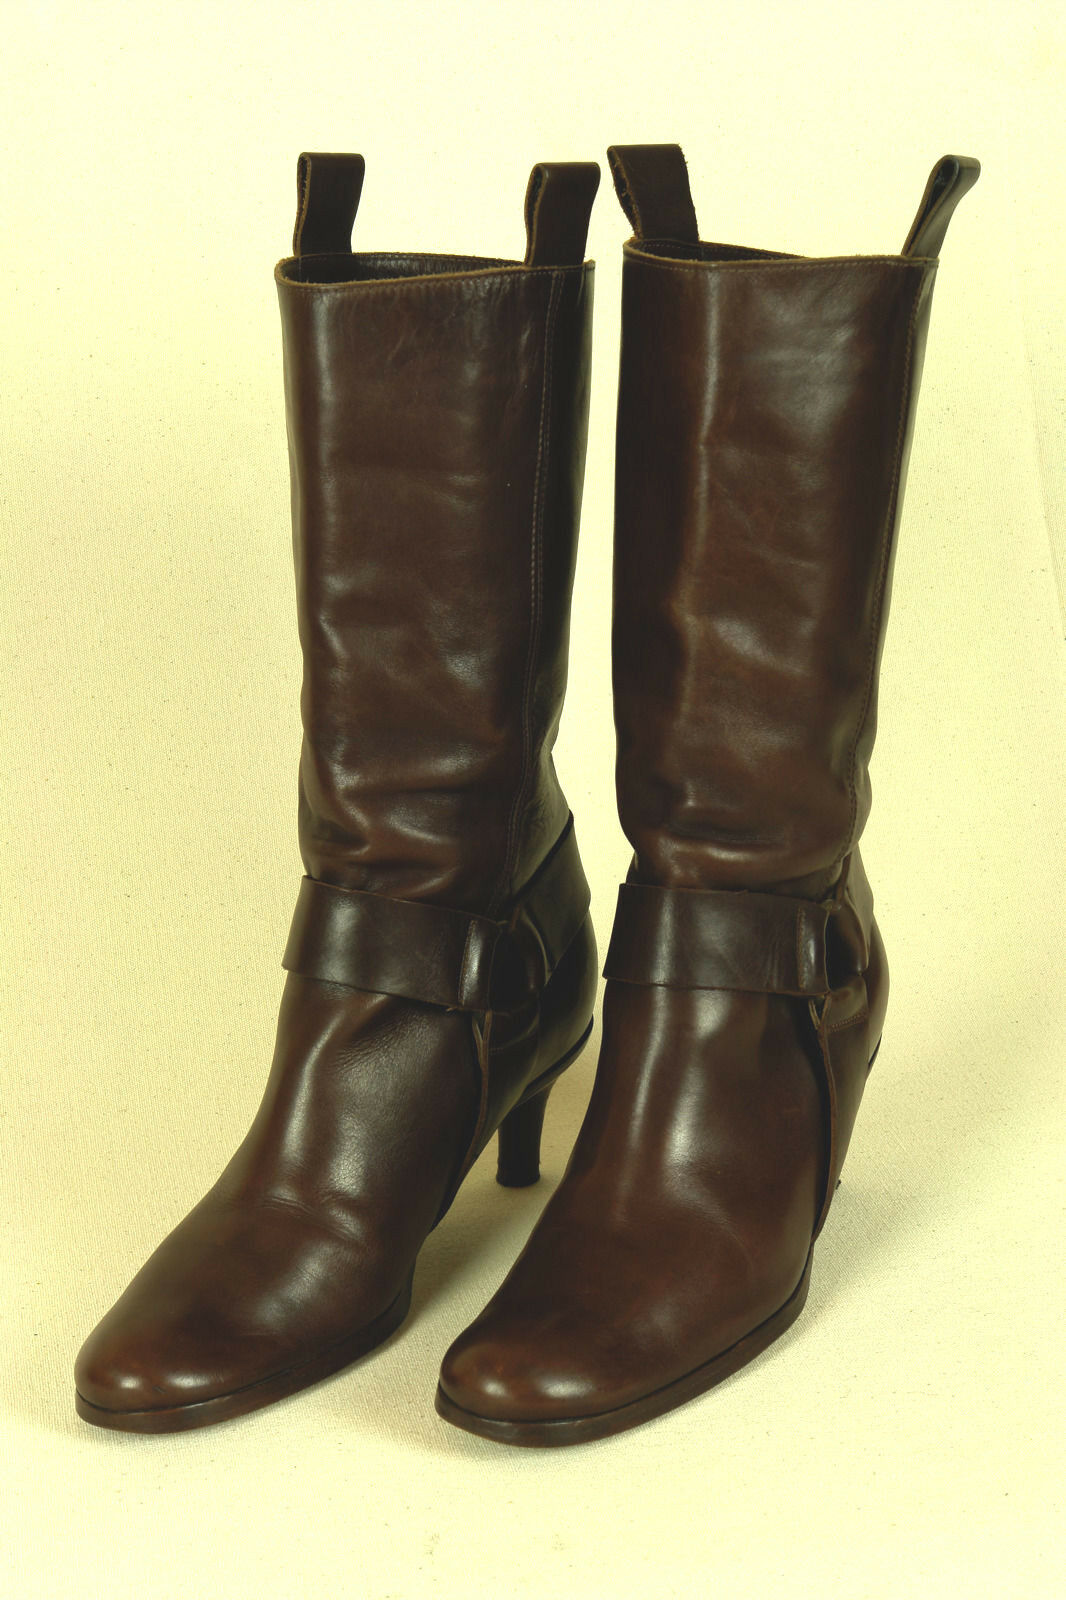 HABILLE / ITALY / MIDCALF RIDING BOOT IN BROWN / SZ: 6 M / EXCELLENT